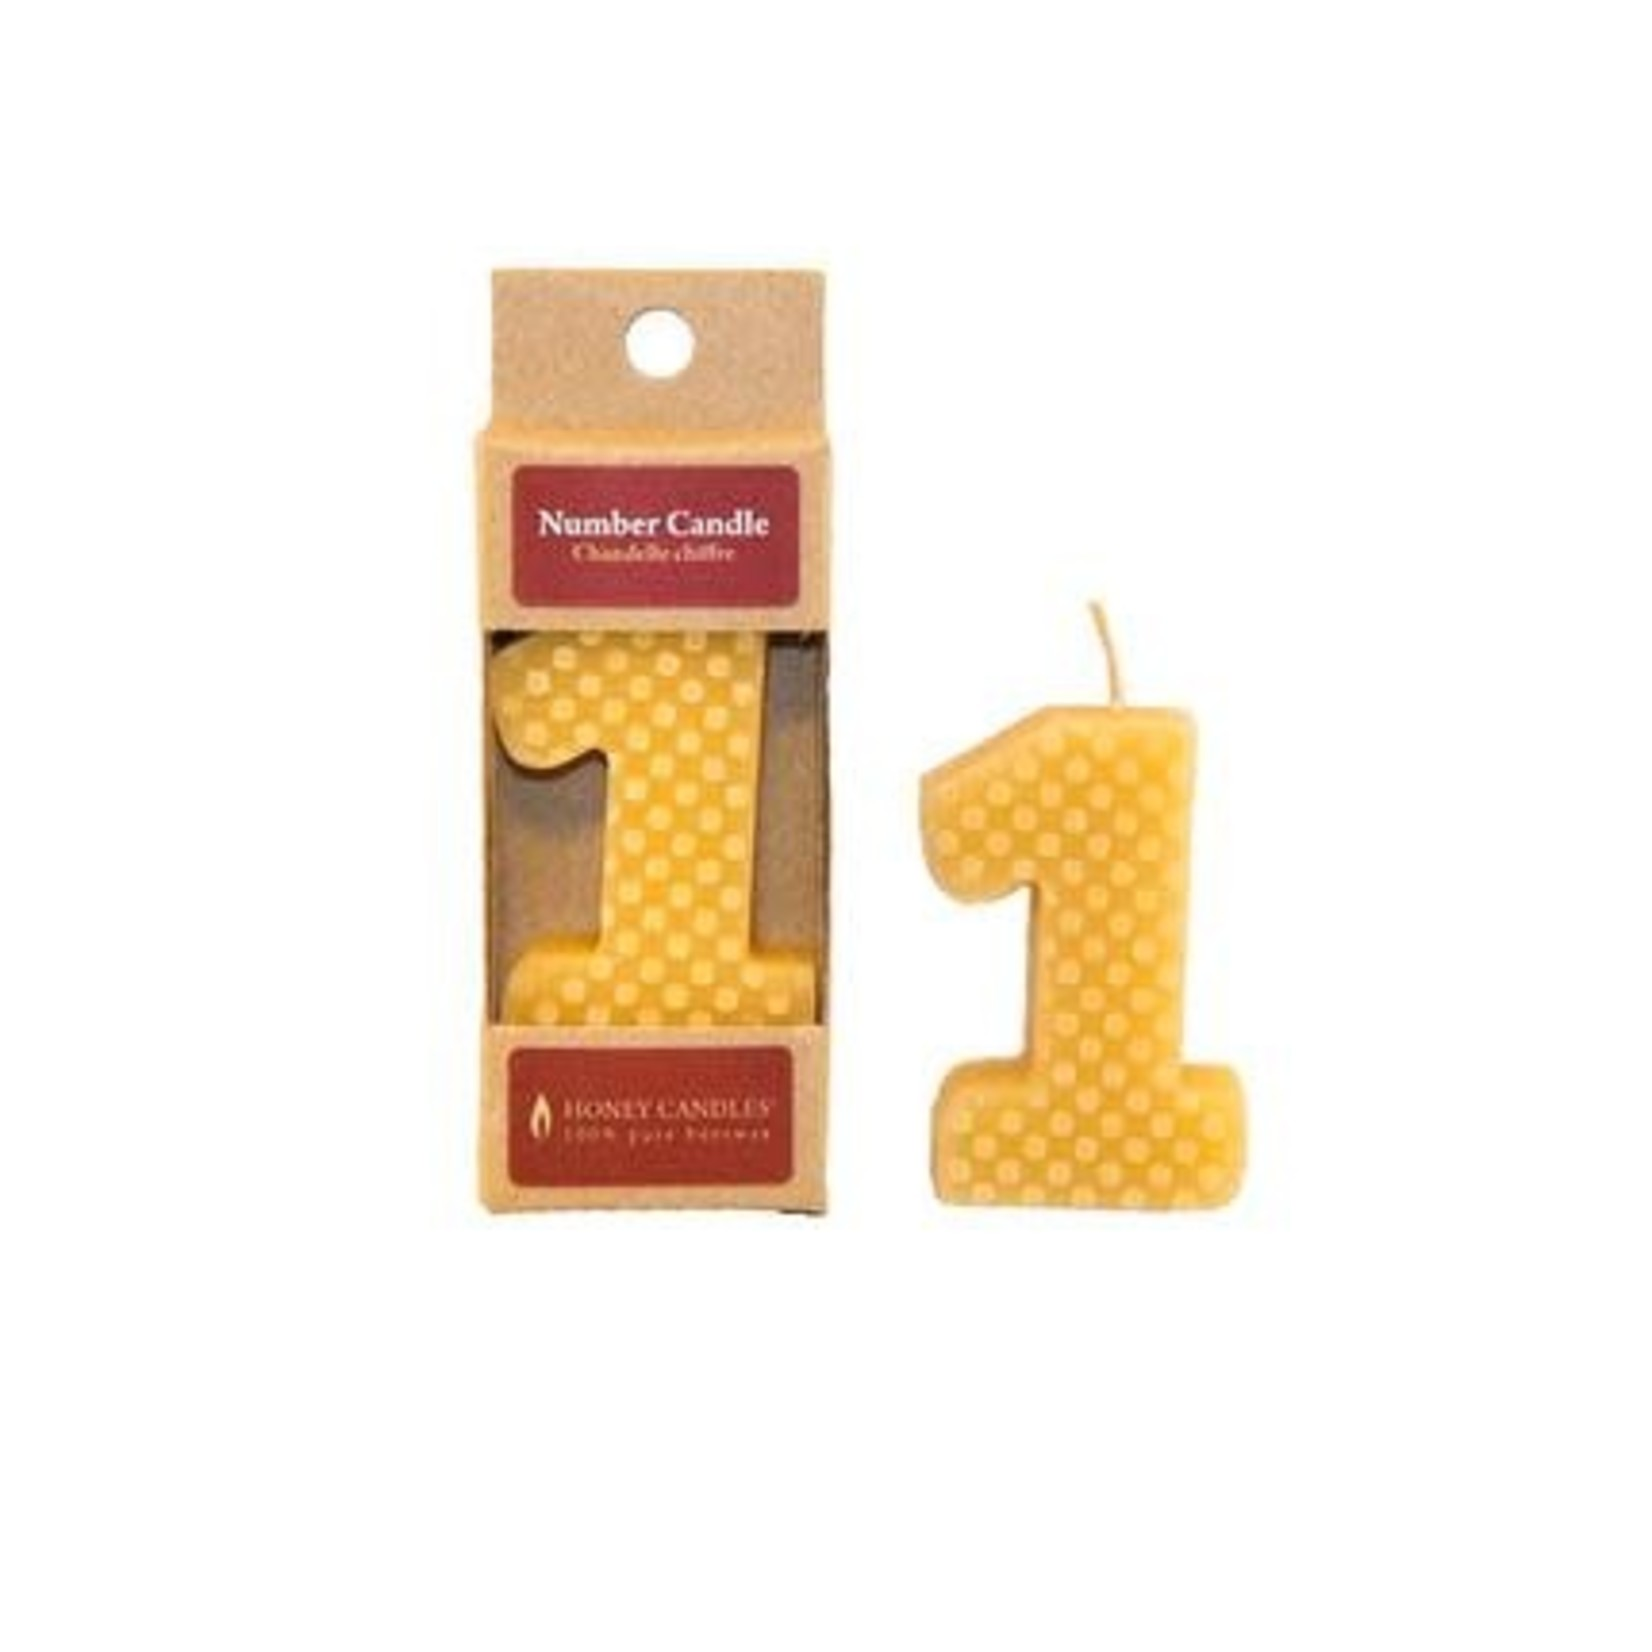 HONEY CANDLES NUMBER 1 BEESWAX CANDLE